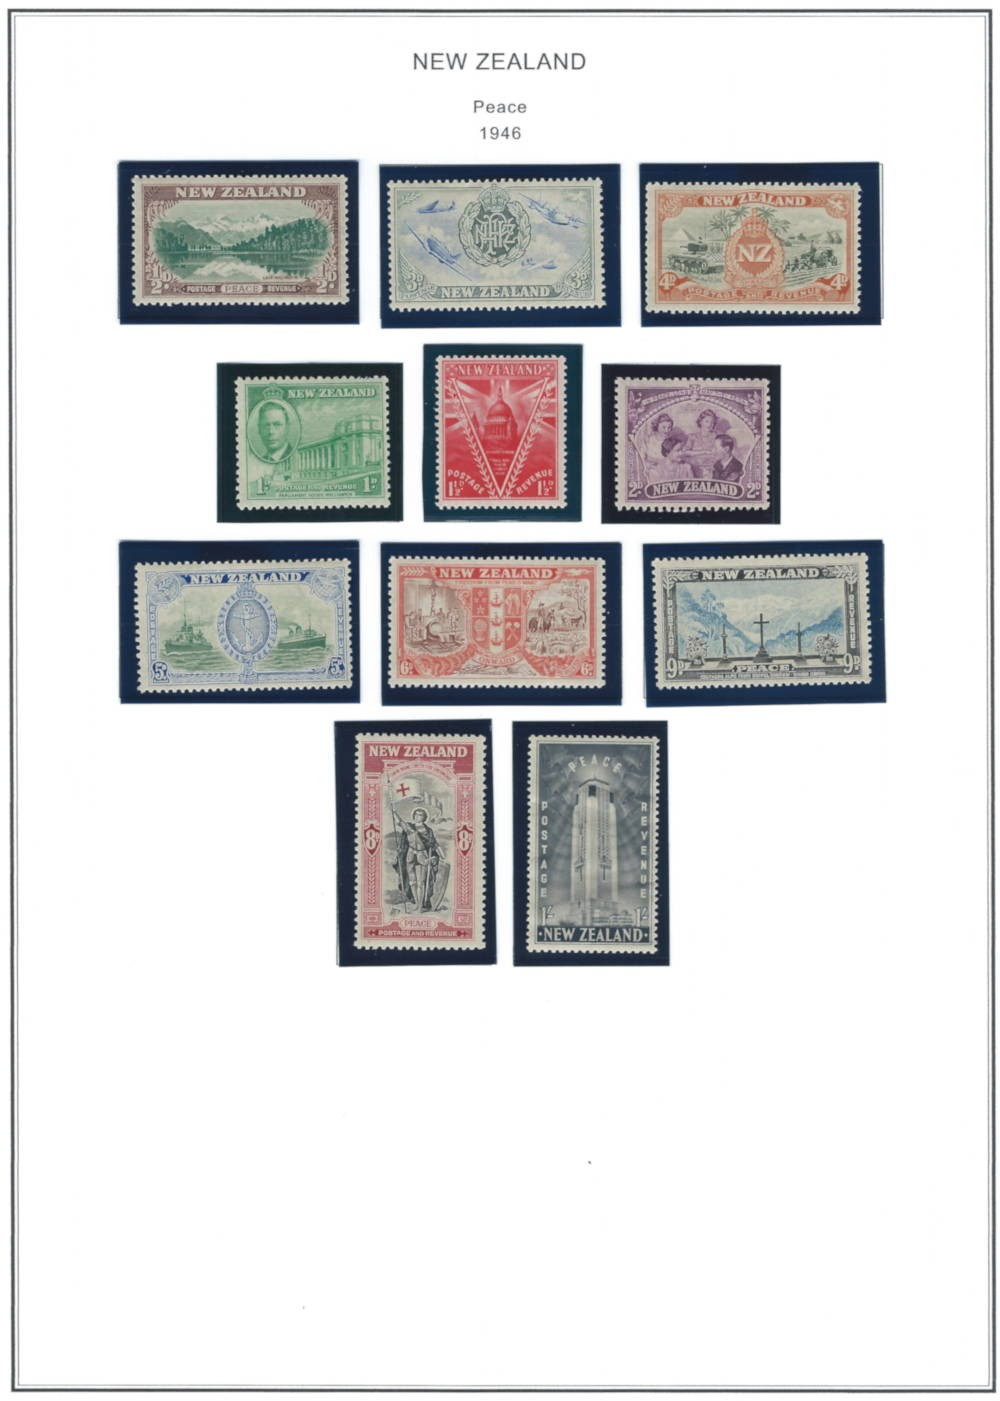 The 1946 New Zealand Peace Issue Stamp Series issued at the end of WWII